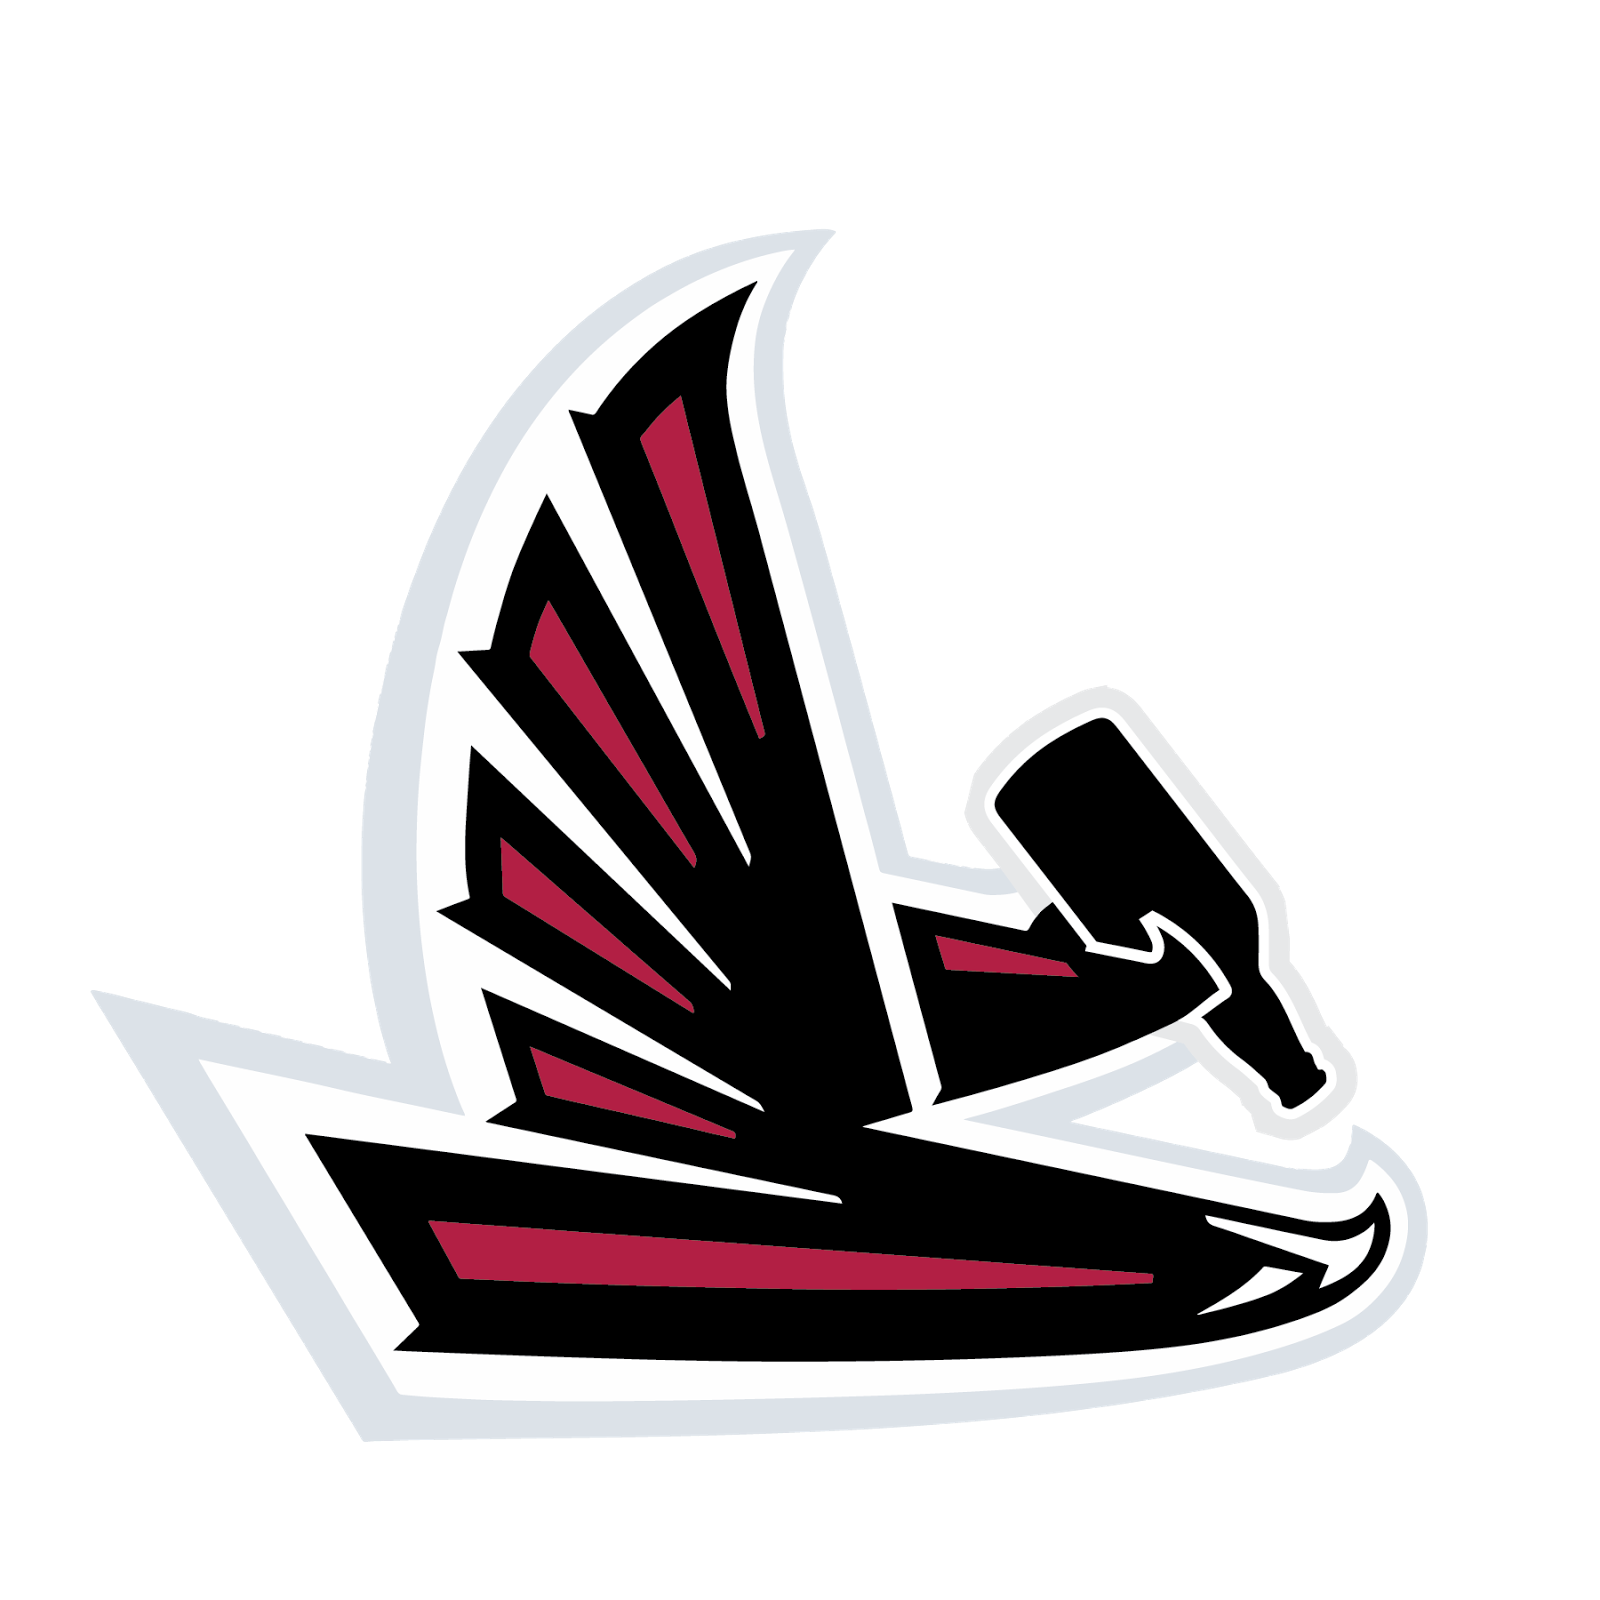 Atlanta Falcons, metal, logo, re-imagined